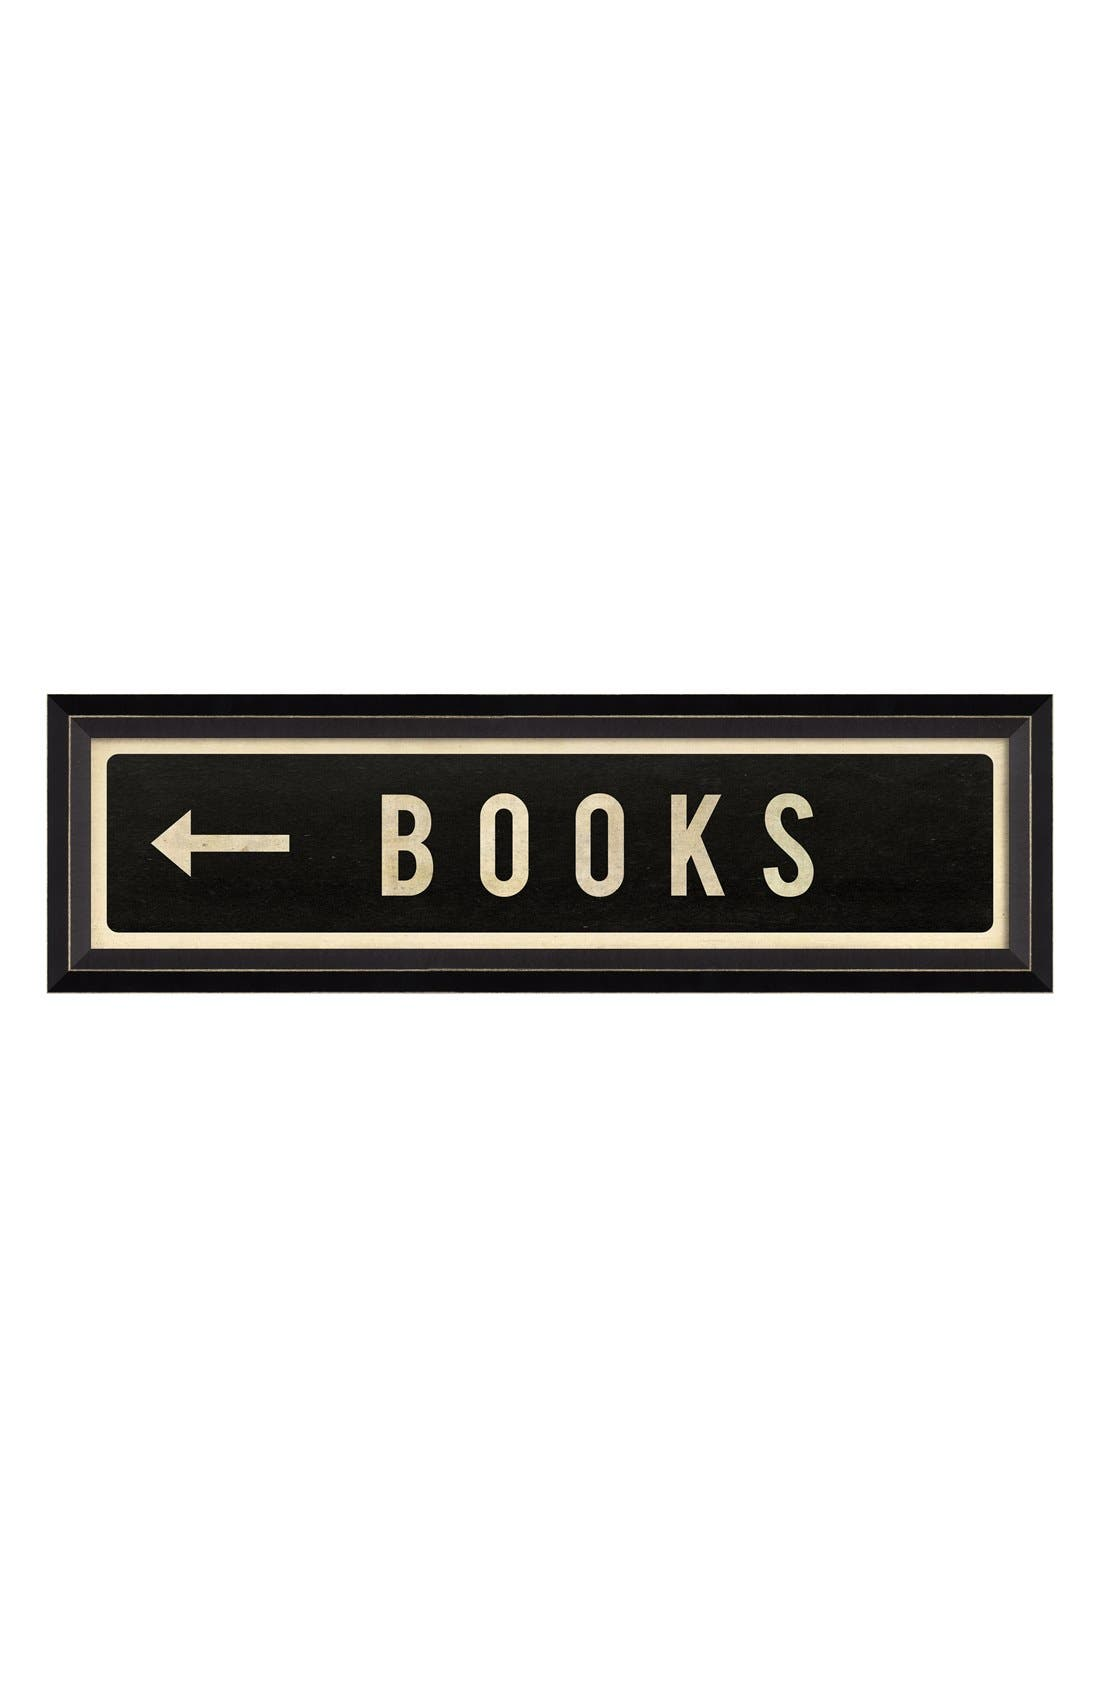 Alternate Image 1 Selected - Spicher and Company 'Books' Vintage Look Sign Artwork